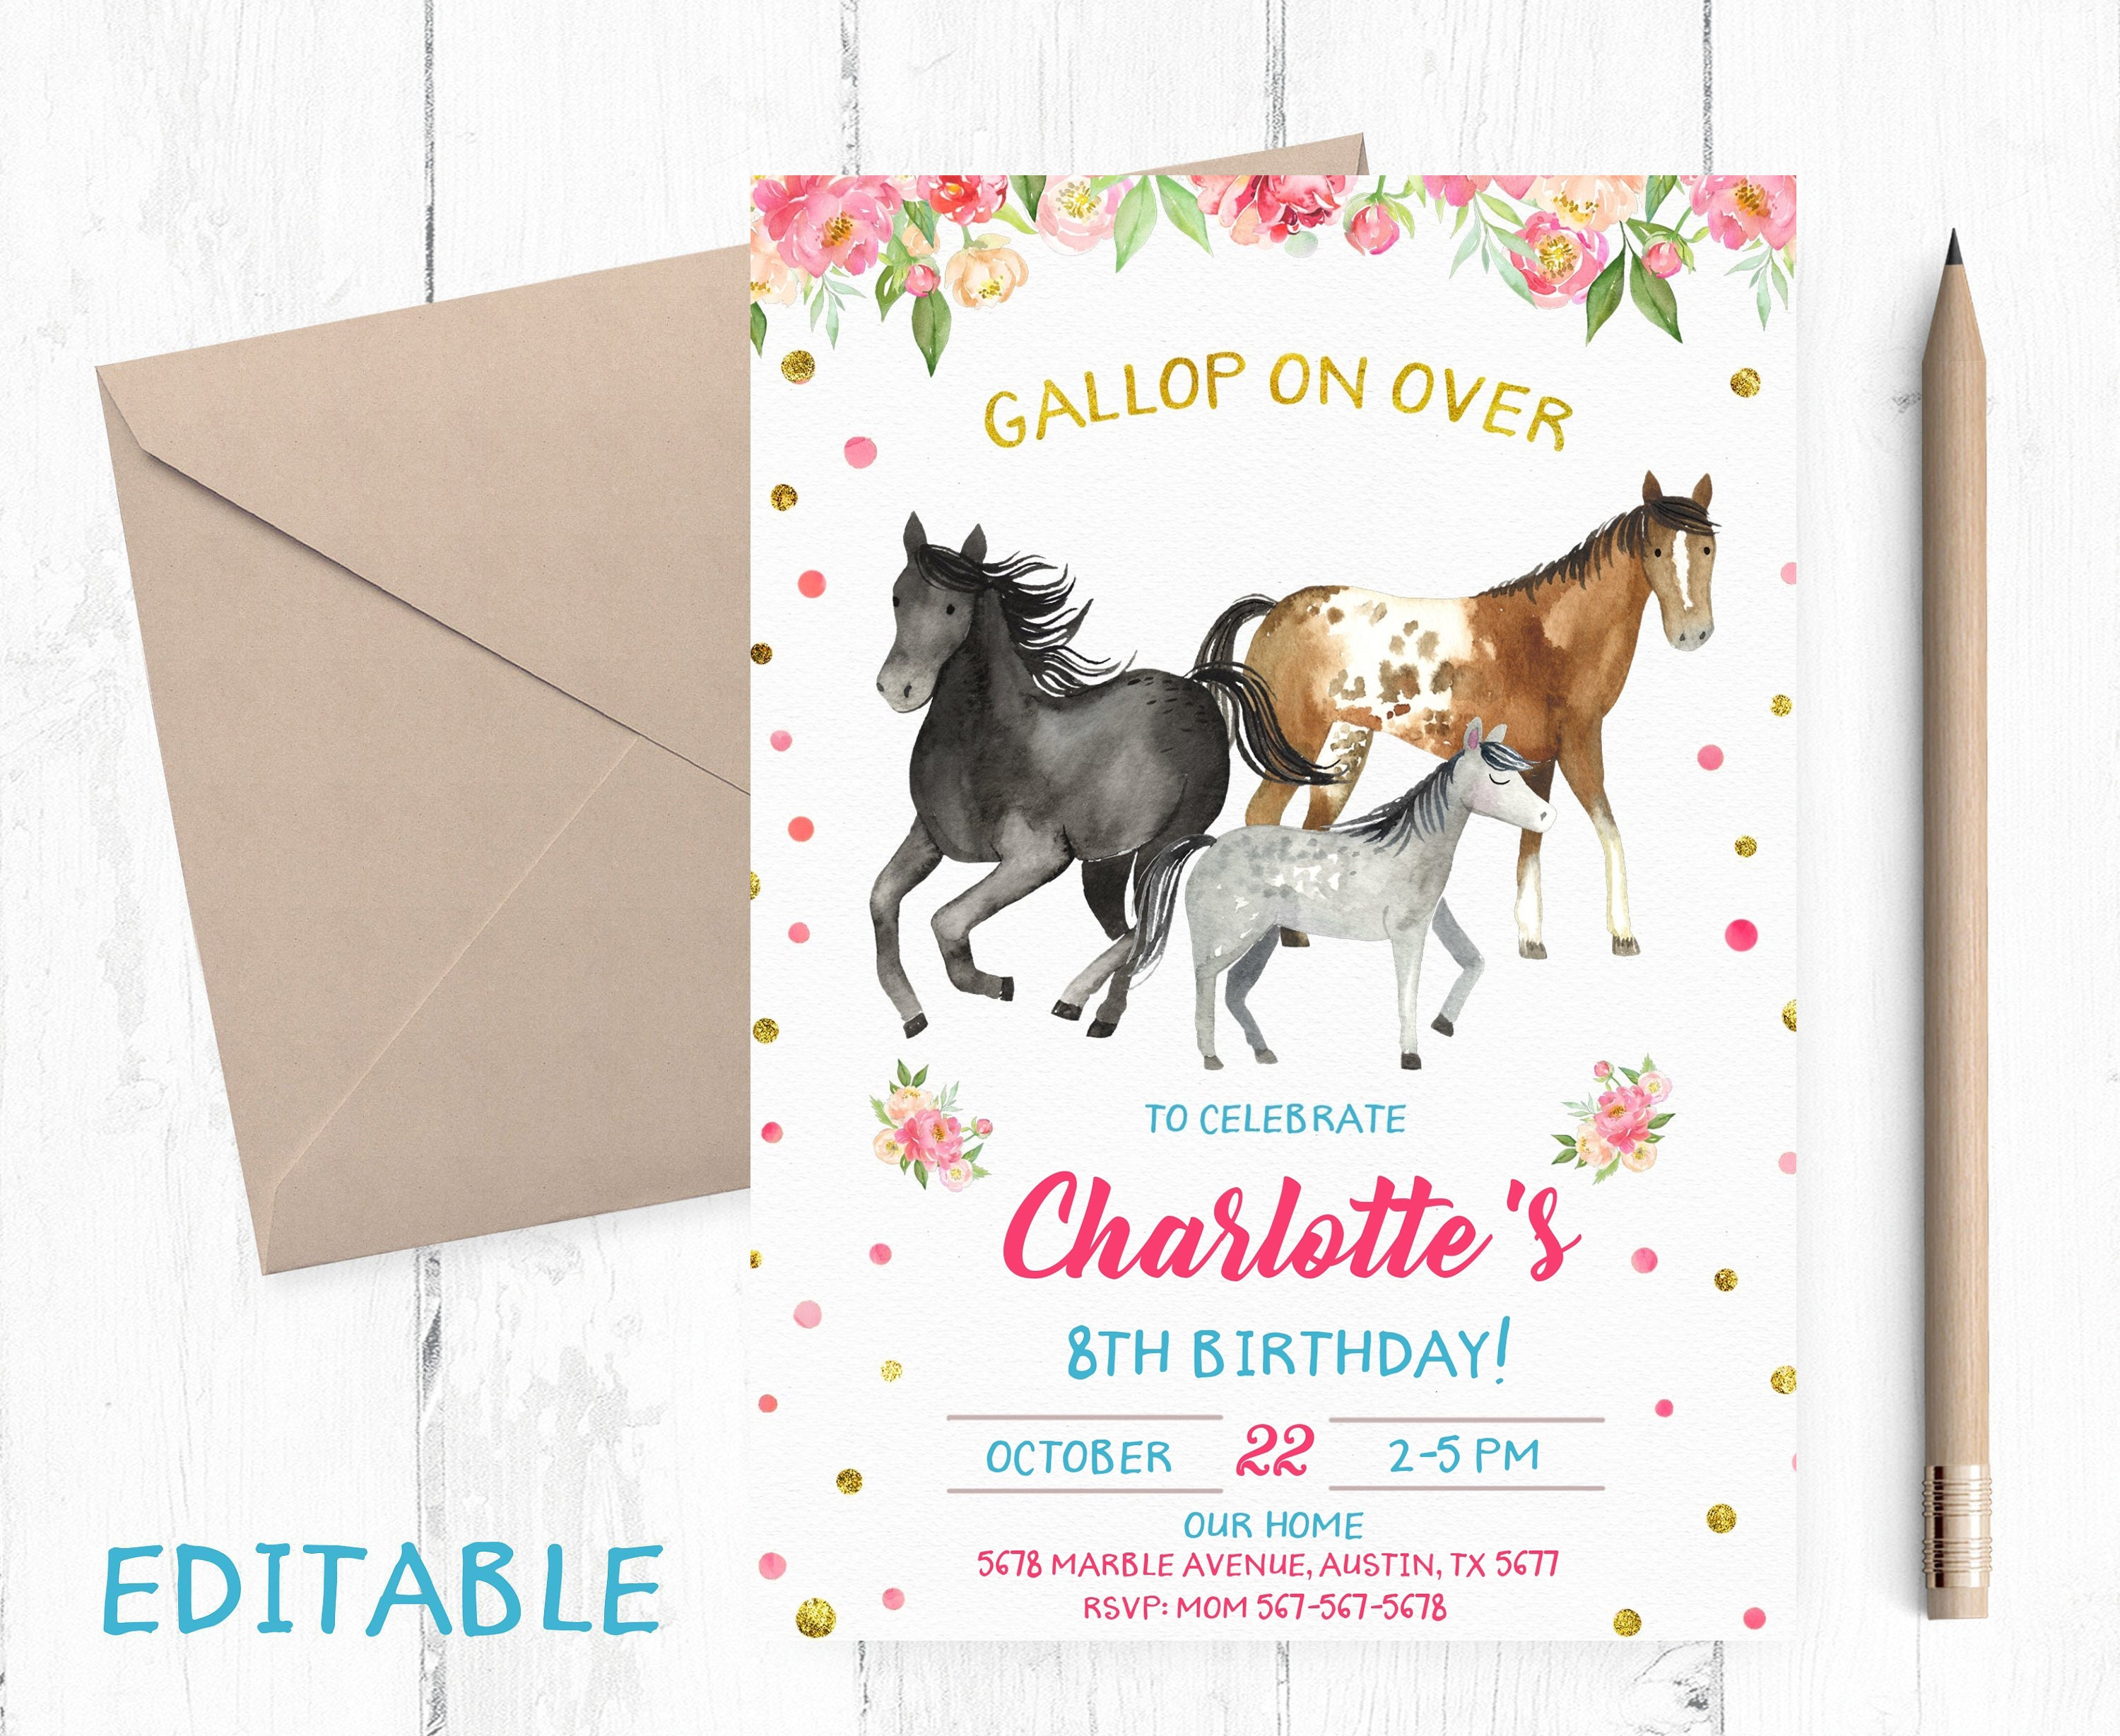 EDITABLE Horse Birthday Invitation EDIT Yourself Party